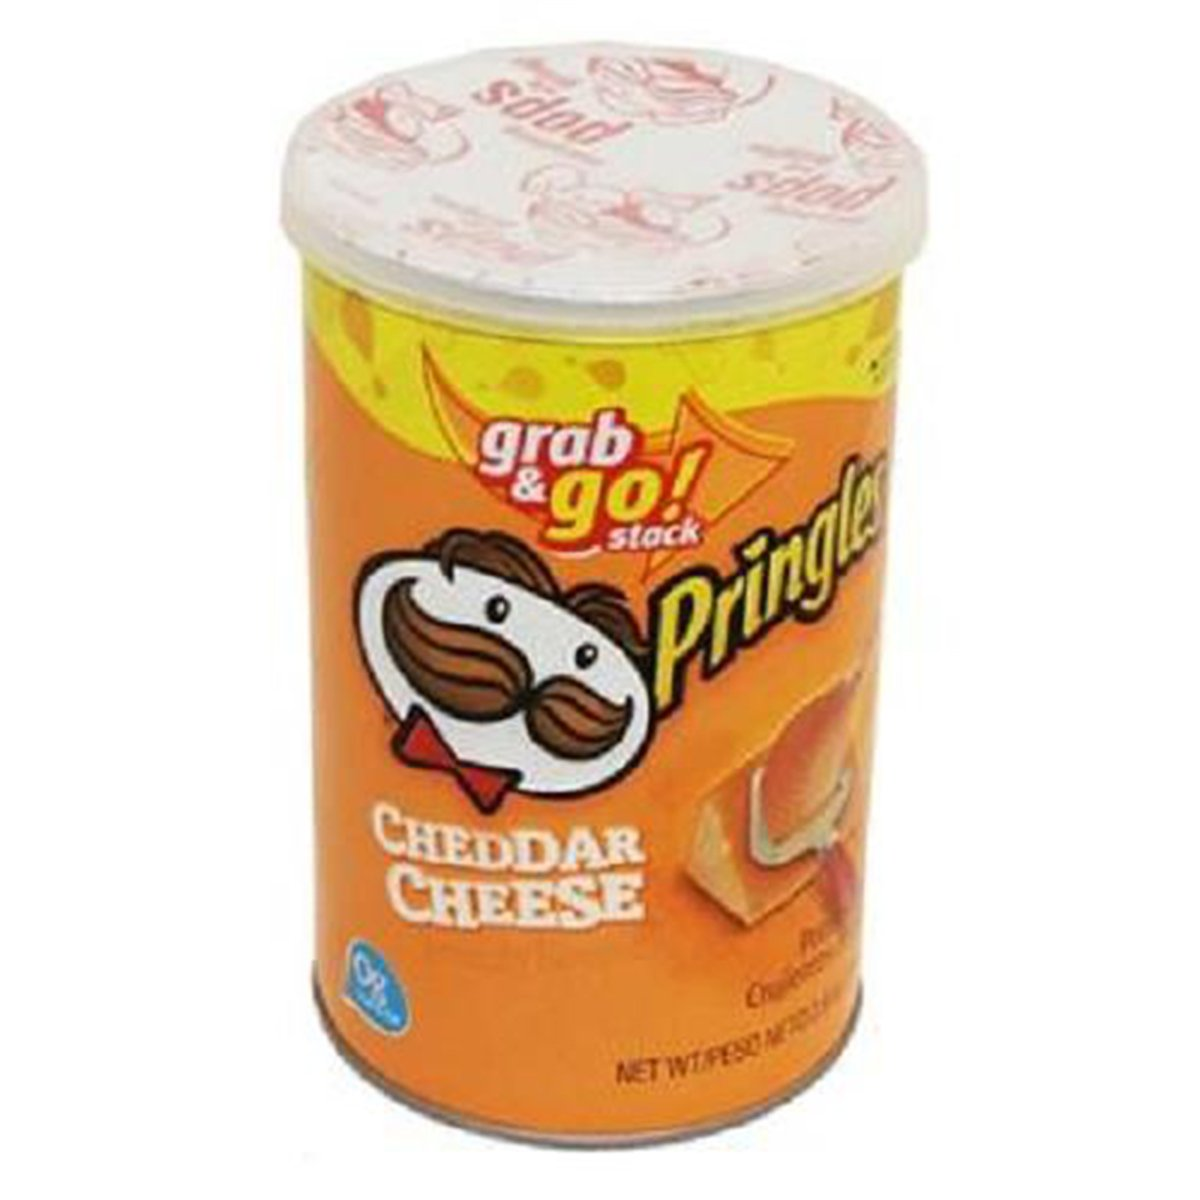 Product Of Pringles, Grab & Go - Cheddar Cheese Medium, Count 1 - Chips / Grab Varieties & Flavors by Product Of Pringles (Image #1)